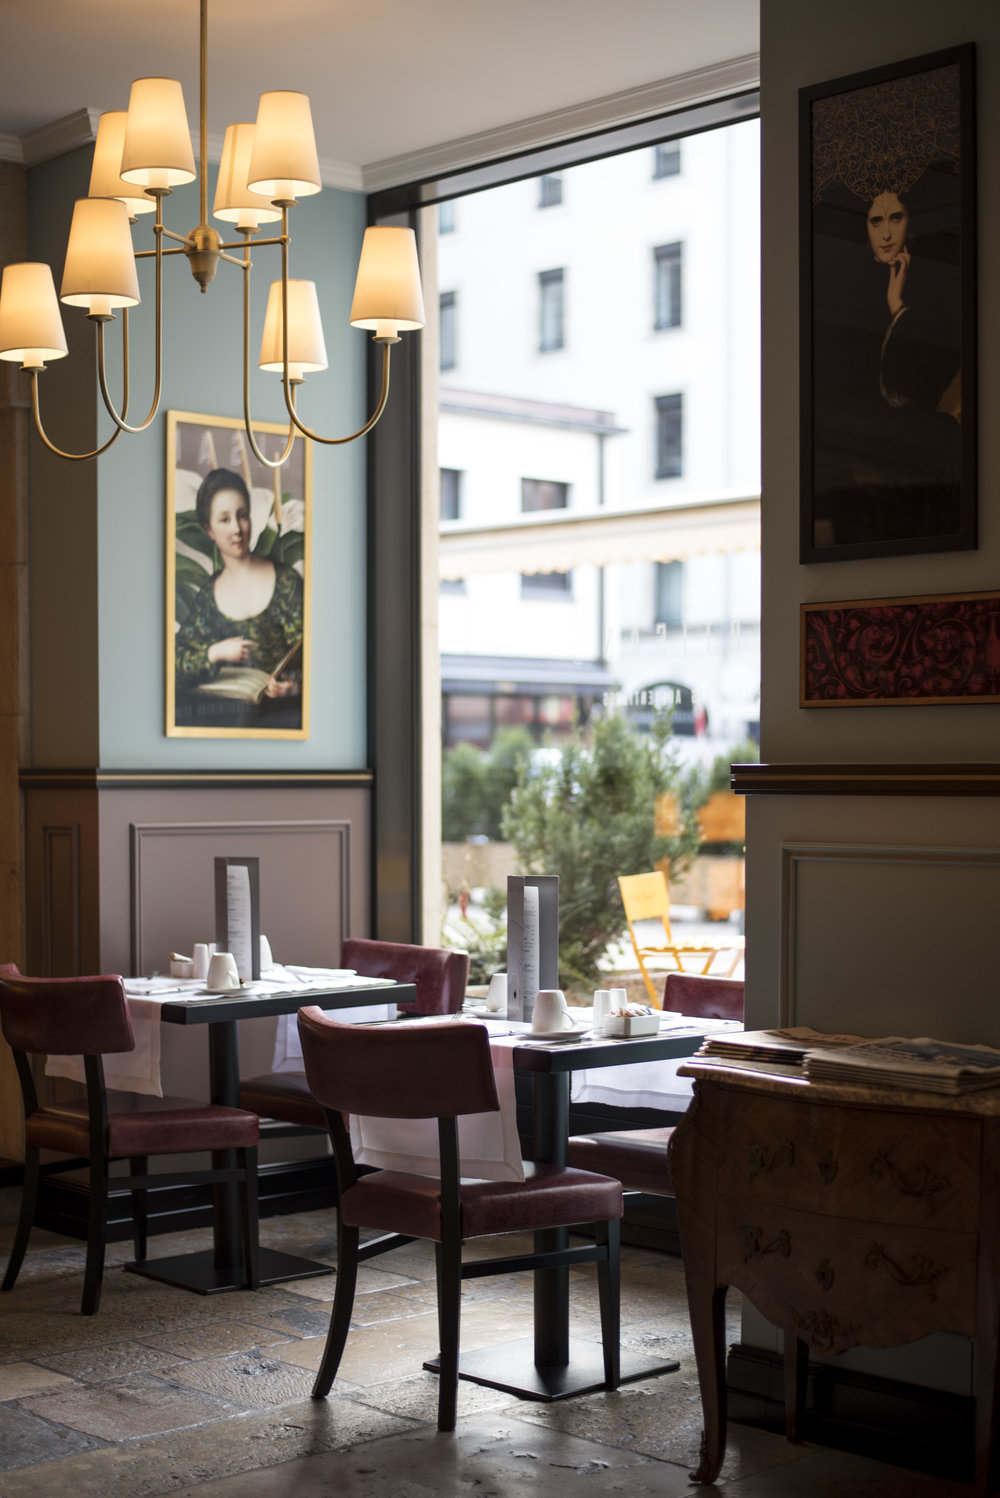 A peek inside the restaurant L'Artisan.